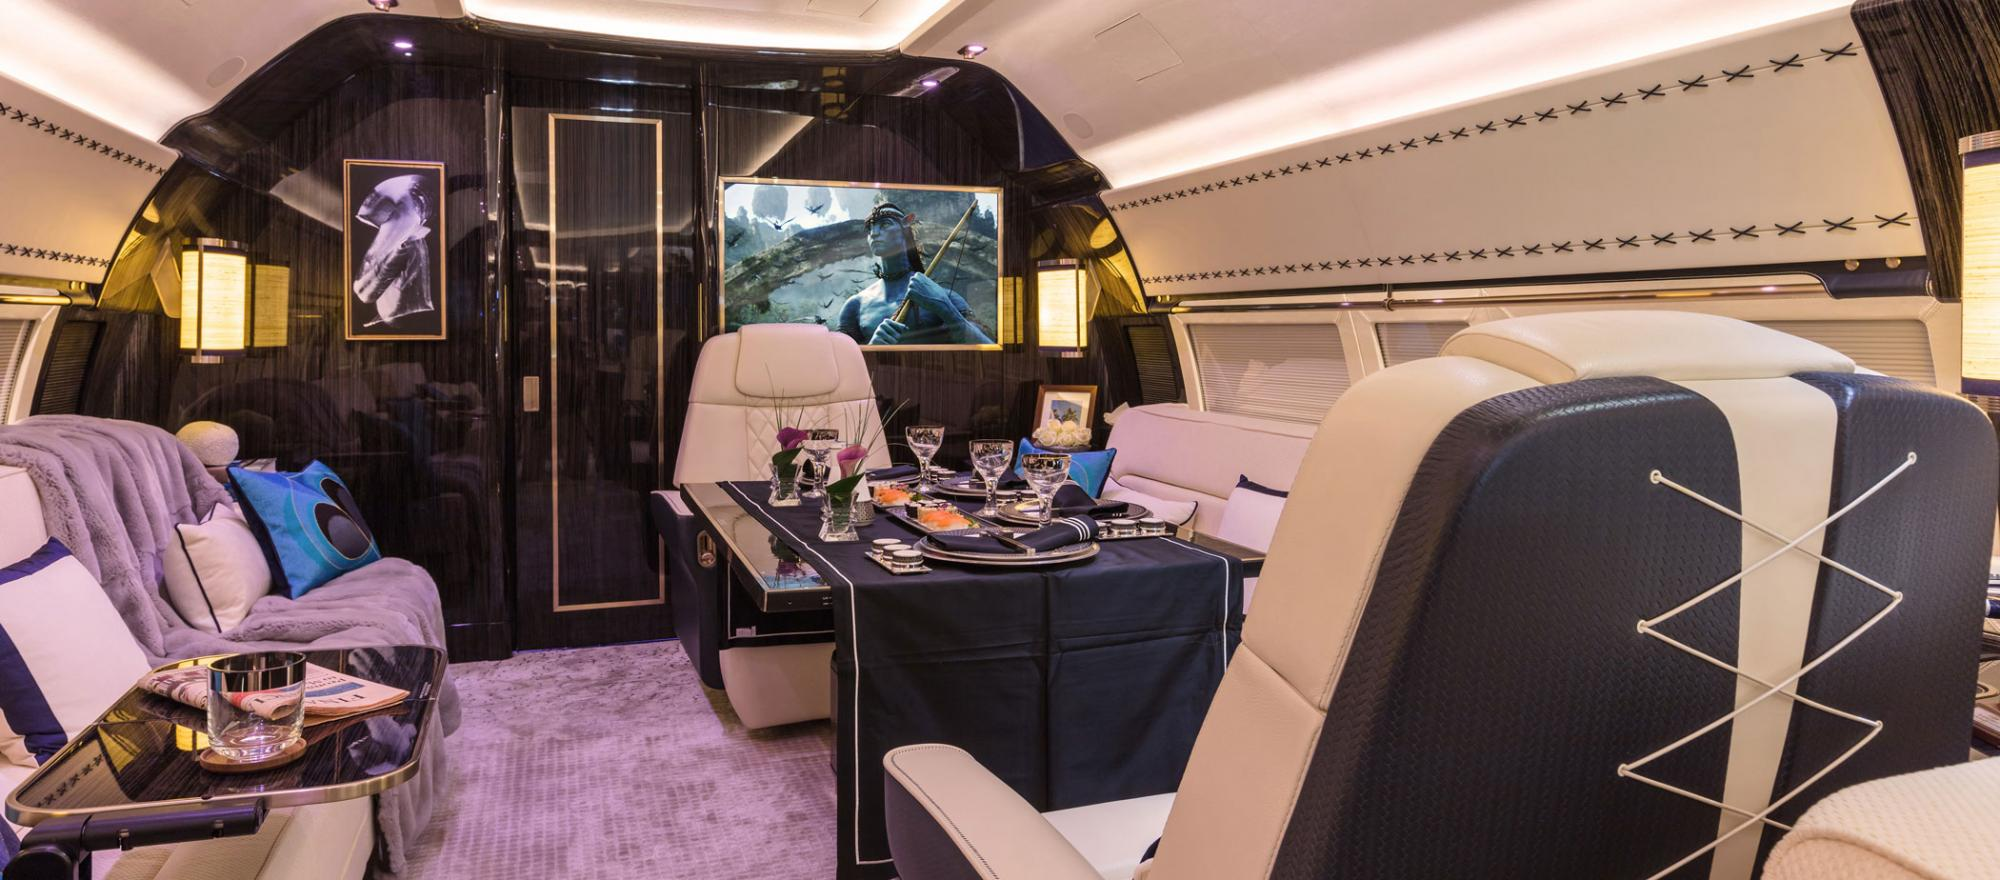 You can dine in style in this elegantly appointed BBJ 1 cabin, a product of Winch Design.